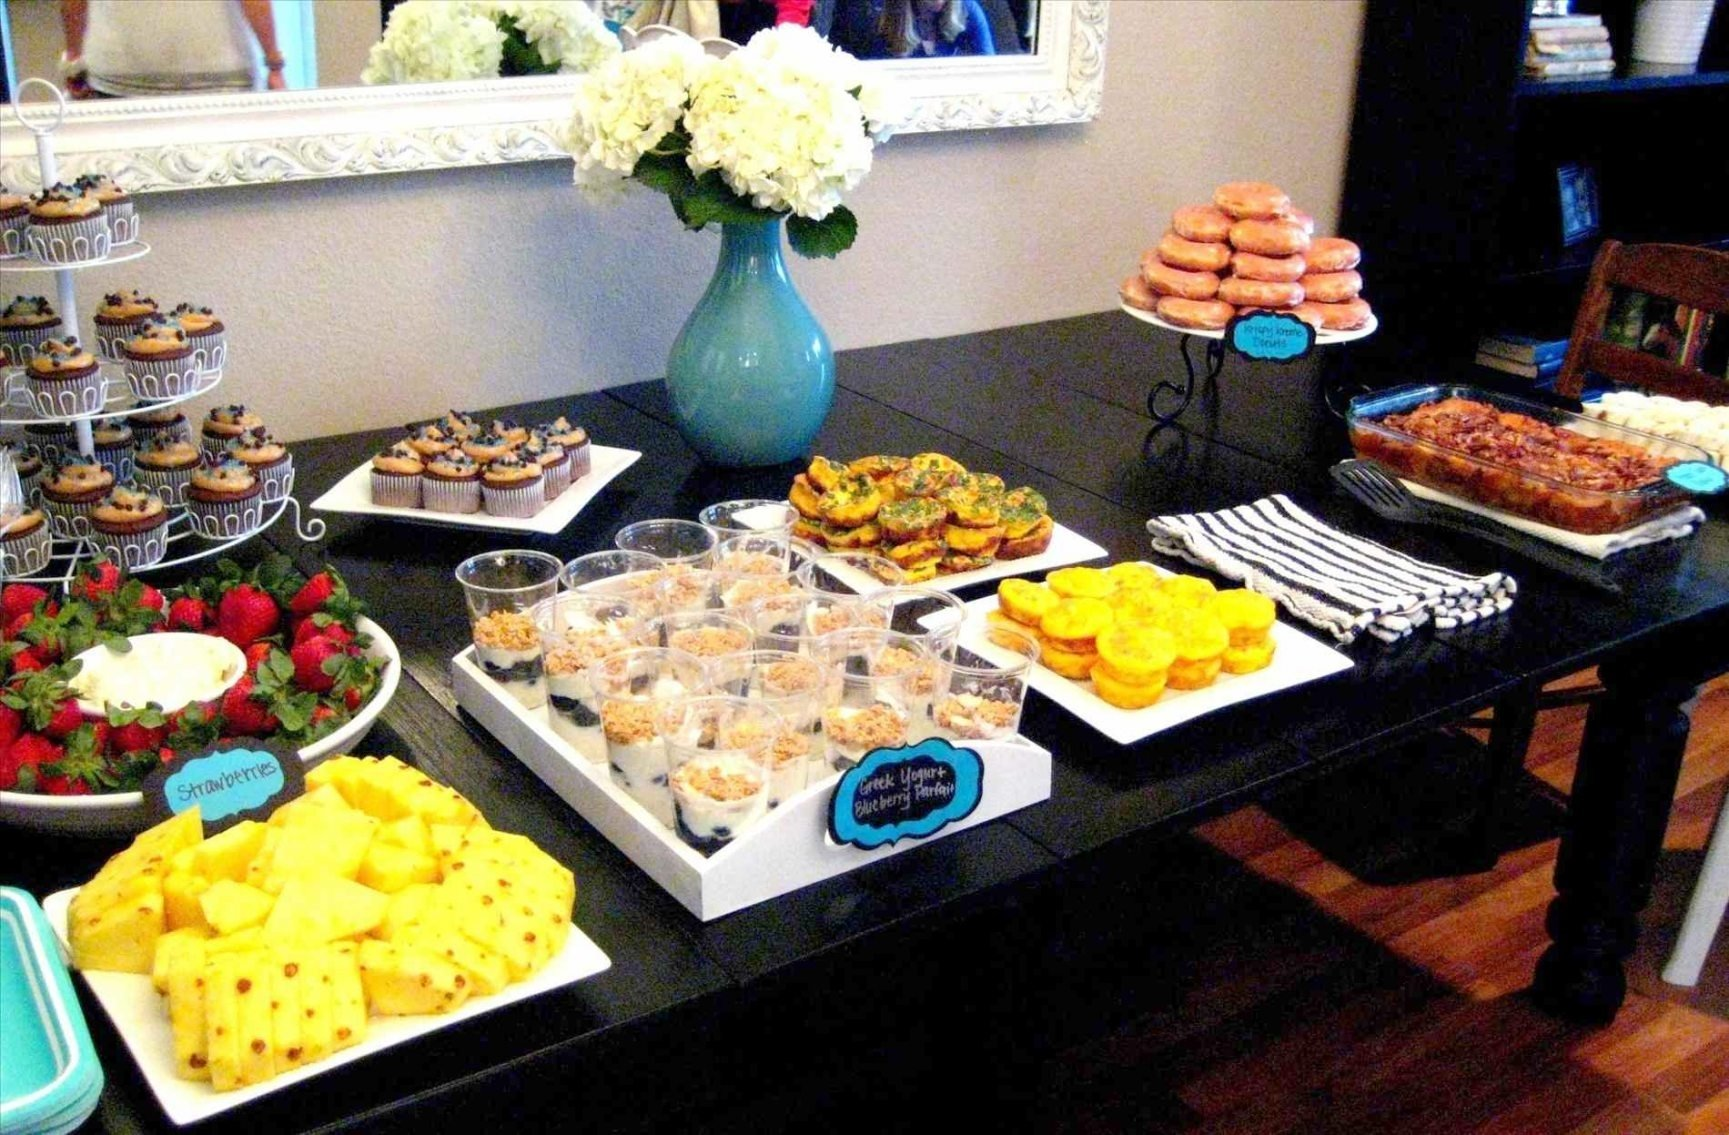 10 Gorgeous Brunch Menu Ideas For Baby Shower baby showerrunch menu ideasuffet recipe archaicawful gallery delish 2020